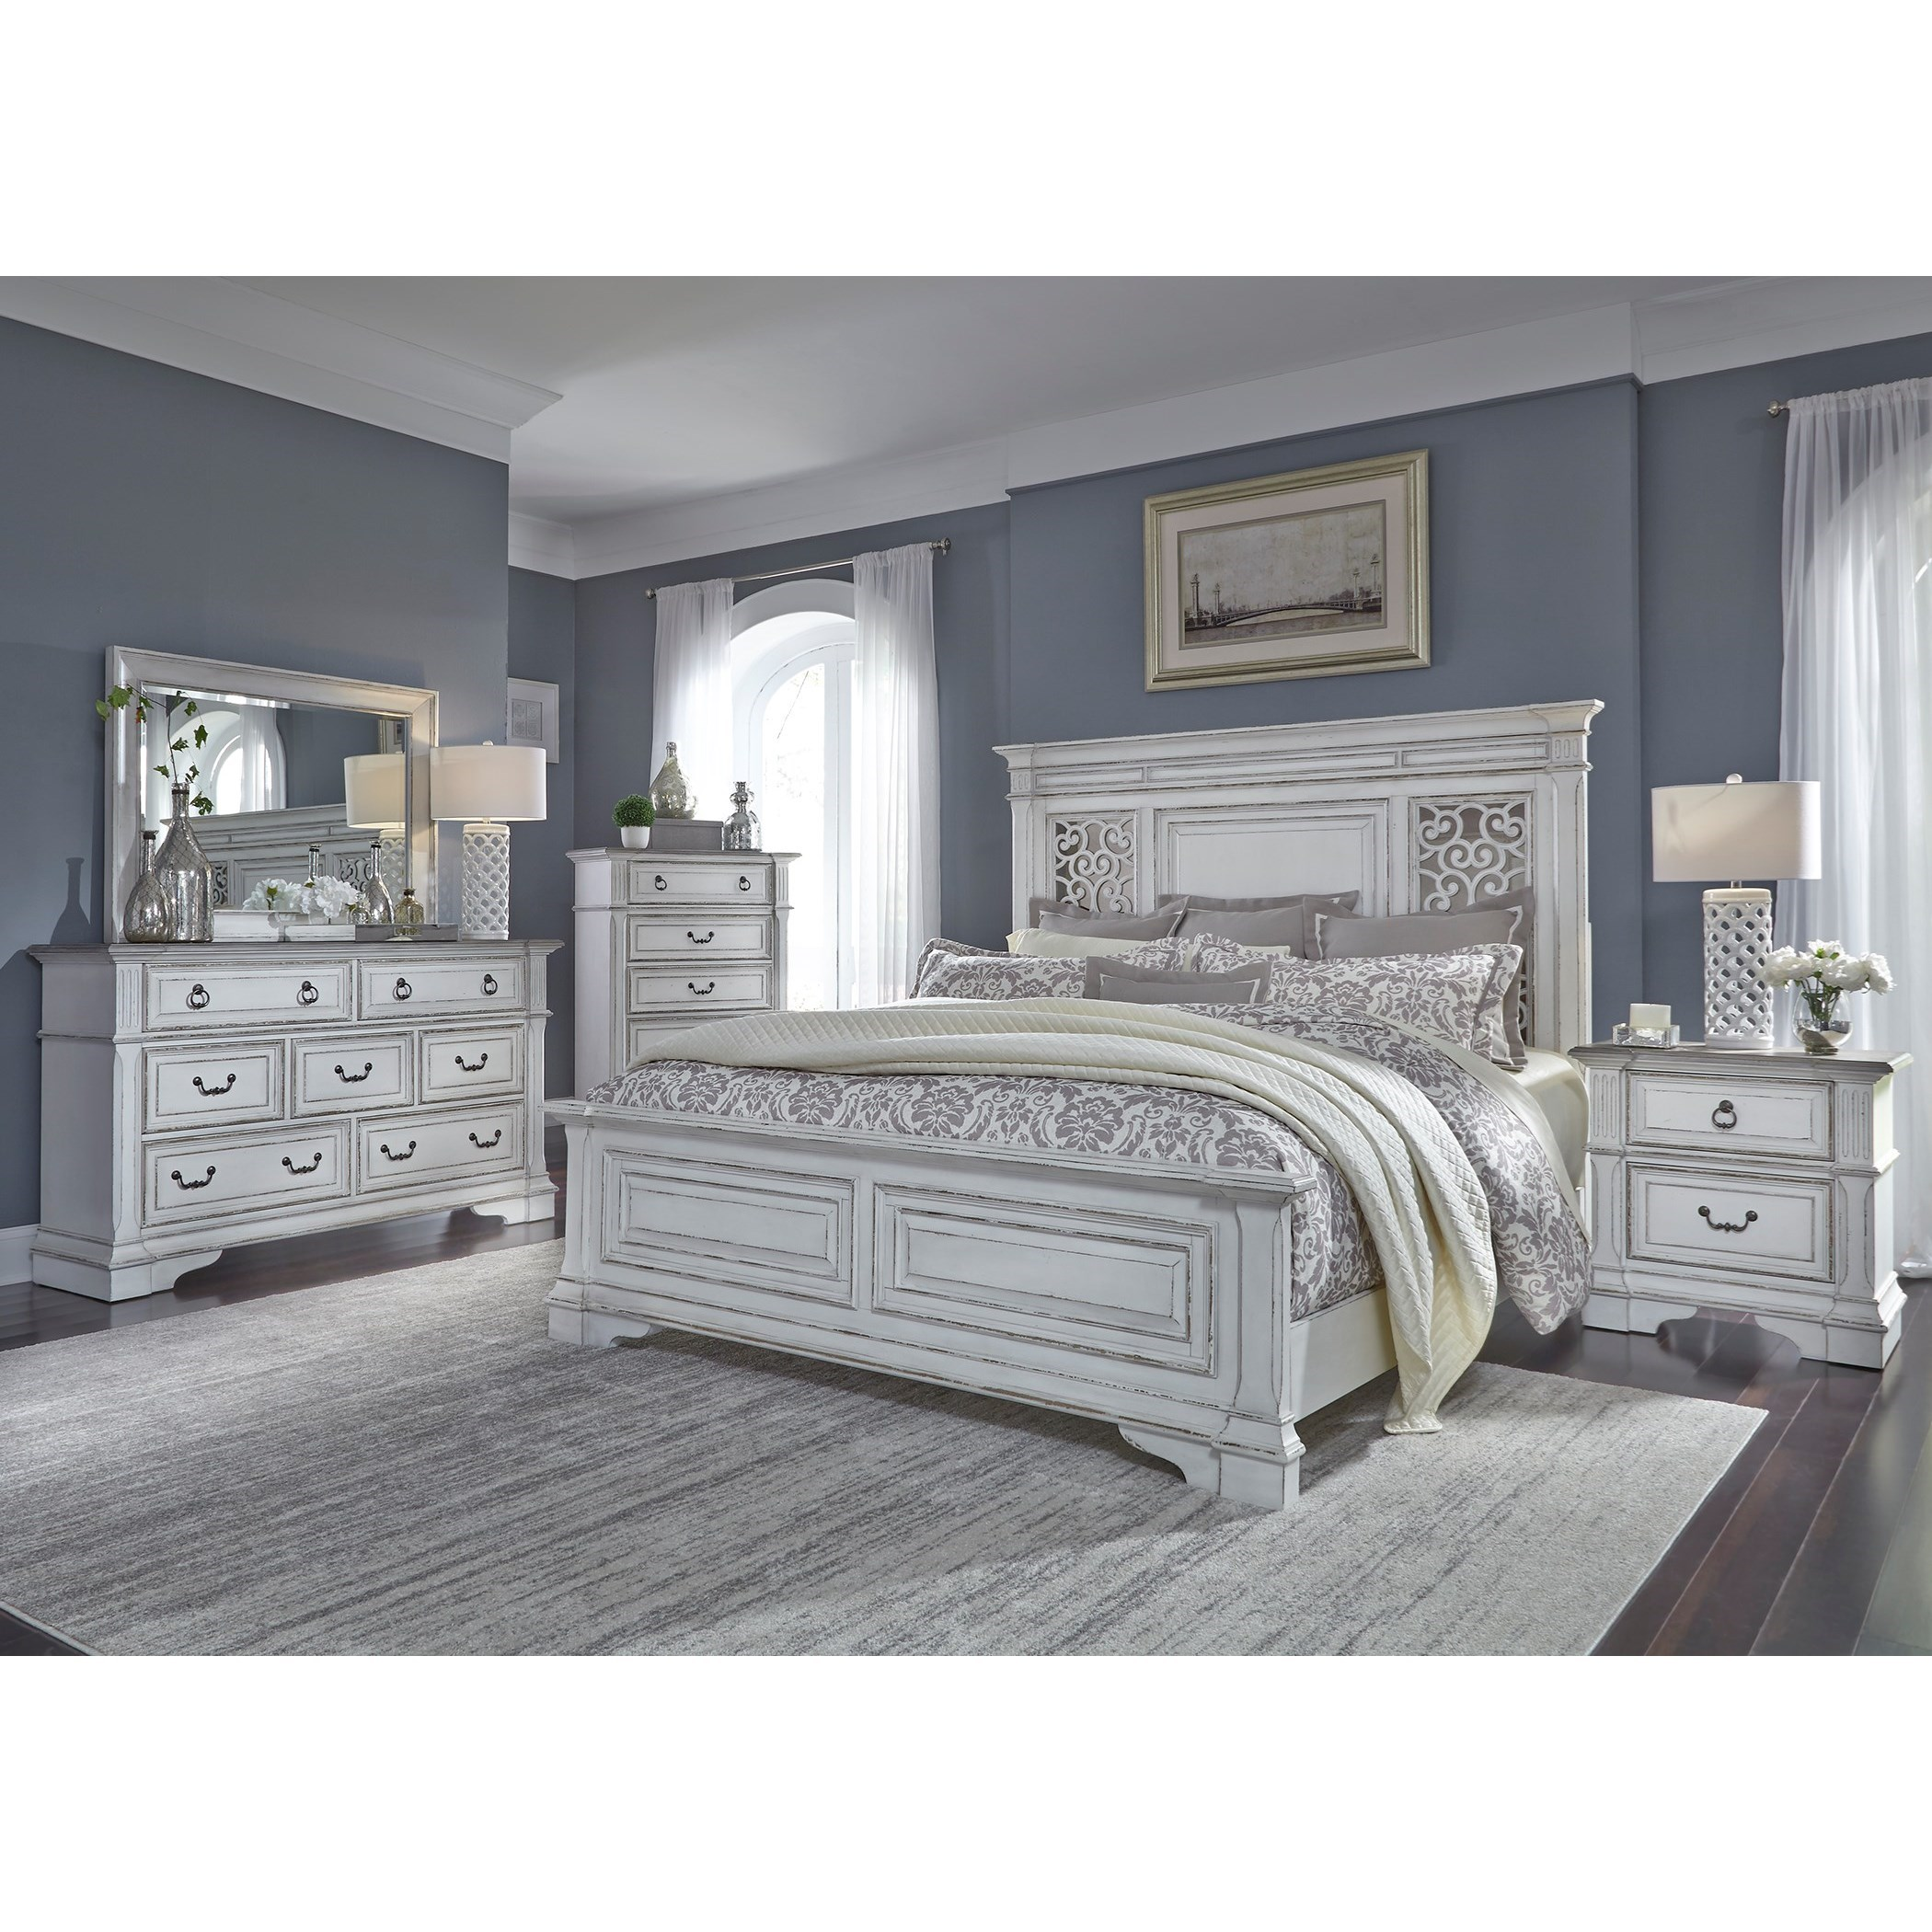 Liberty Furniture Abbey Park Queen Bedroom Group - Item Number: 520-BR-QPBDMCN